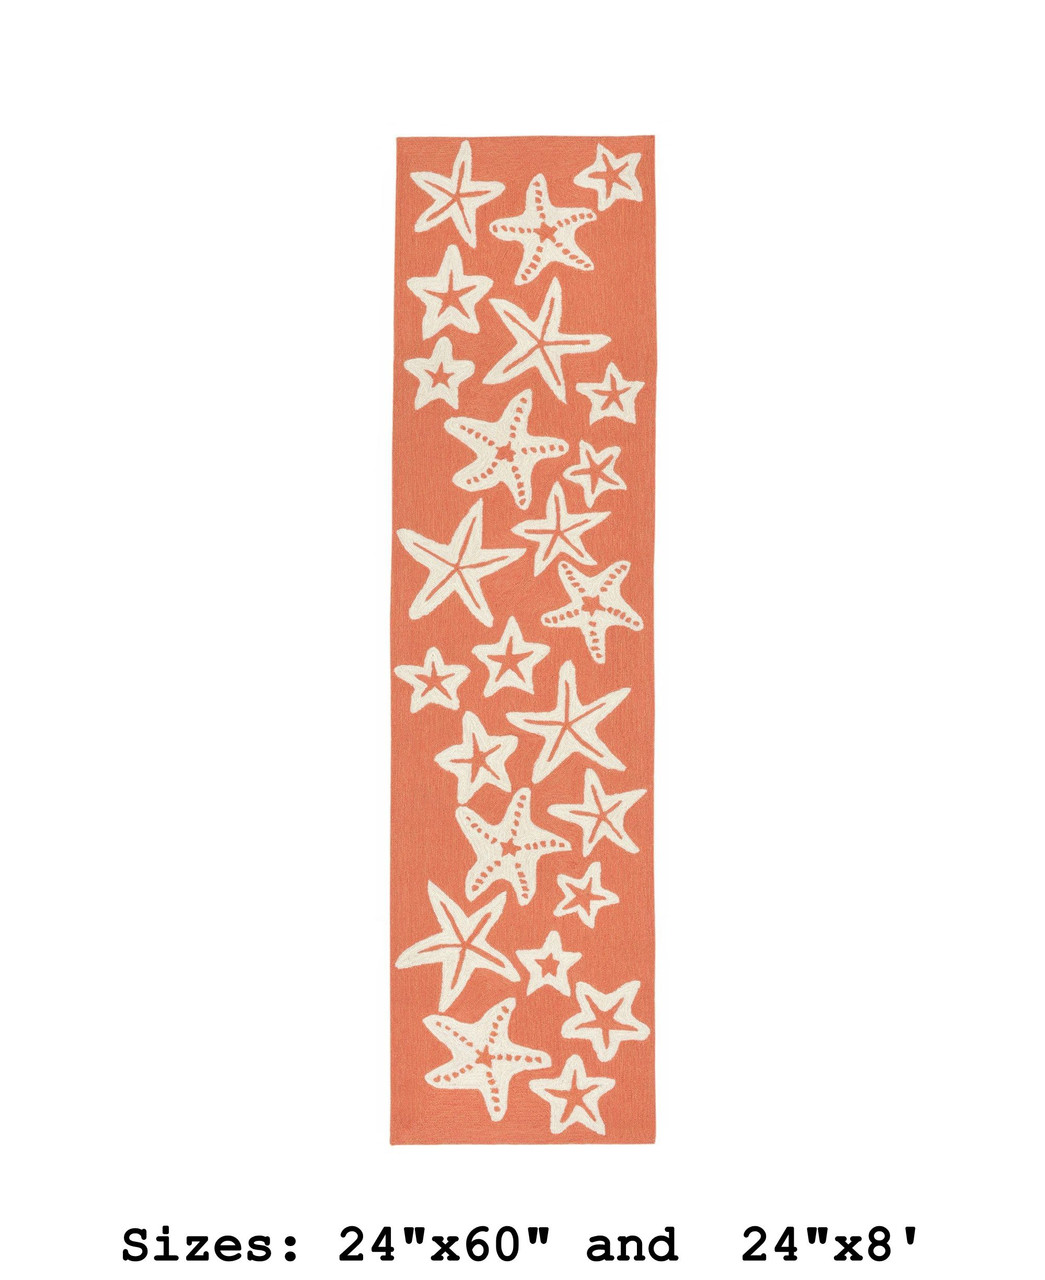 Coral Capri Starfish Indoor/Outdoor Rug - Runner